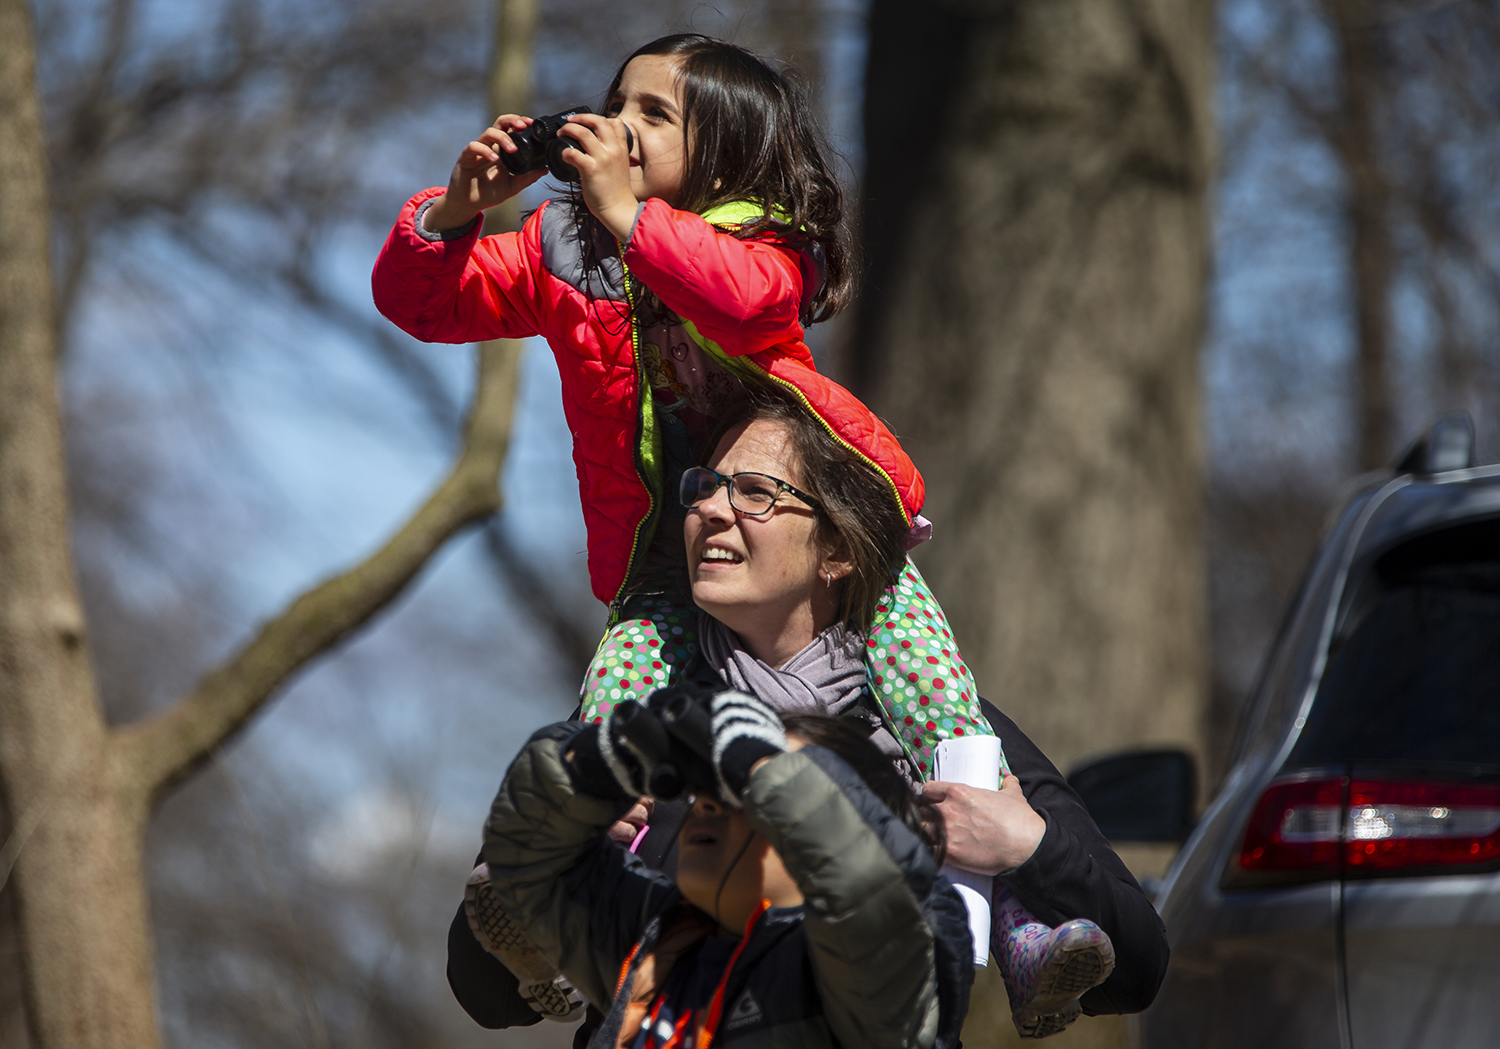 Norah Perry, 5, readies her binoculars from the shoulders of her mother, Denise Perry, center, as she and her brother Benjamin Perry, 9, try to catch a glimpse of a bird species pointed out during a guided bird watching walk hosted by Slow Food Springfield during the annual Pancake Breakfast at Lincoln Memorial Garden, Sunday, March 31, 2019, in Springfield, Ill. [Justin L. Fowler/The State Journal-Register]